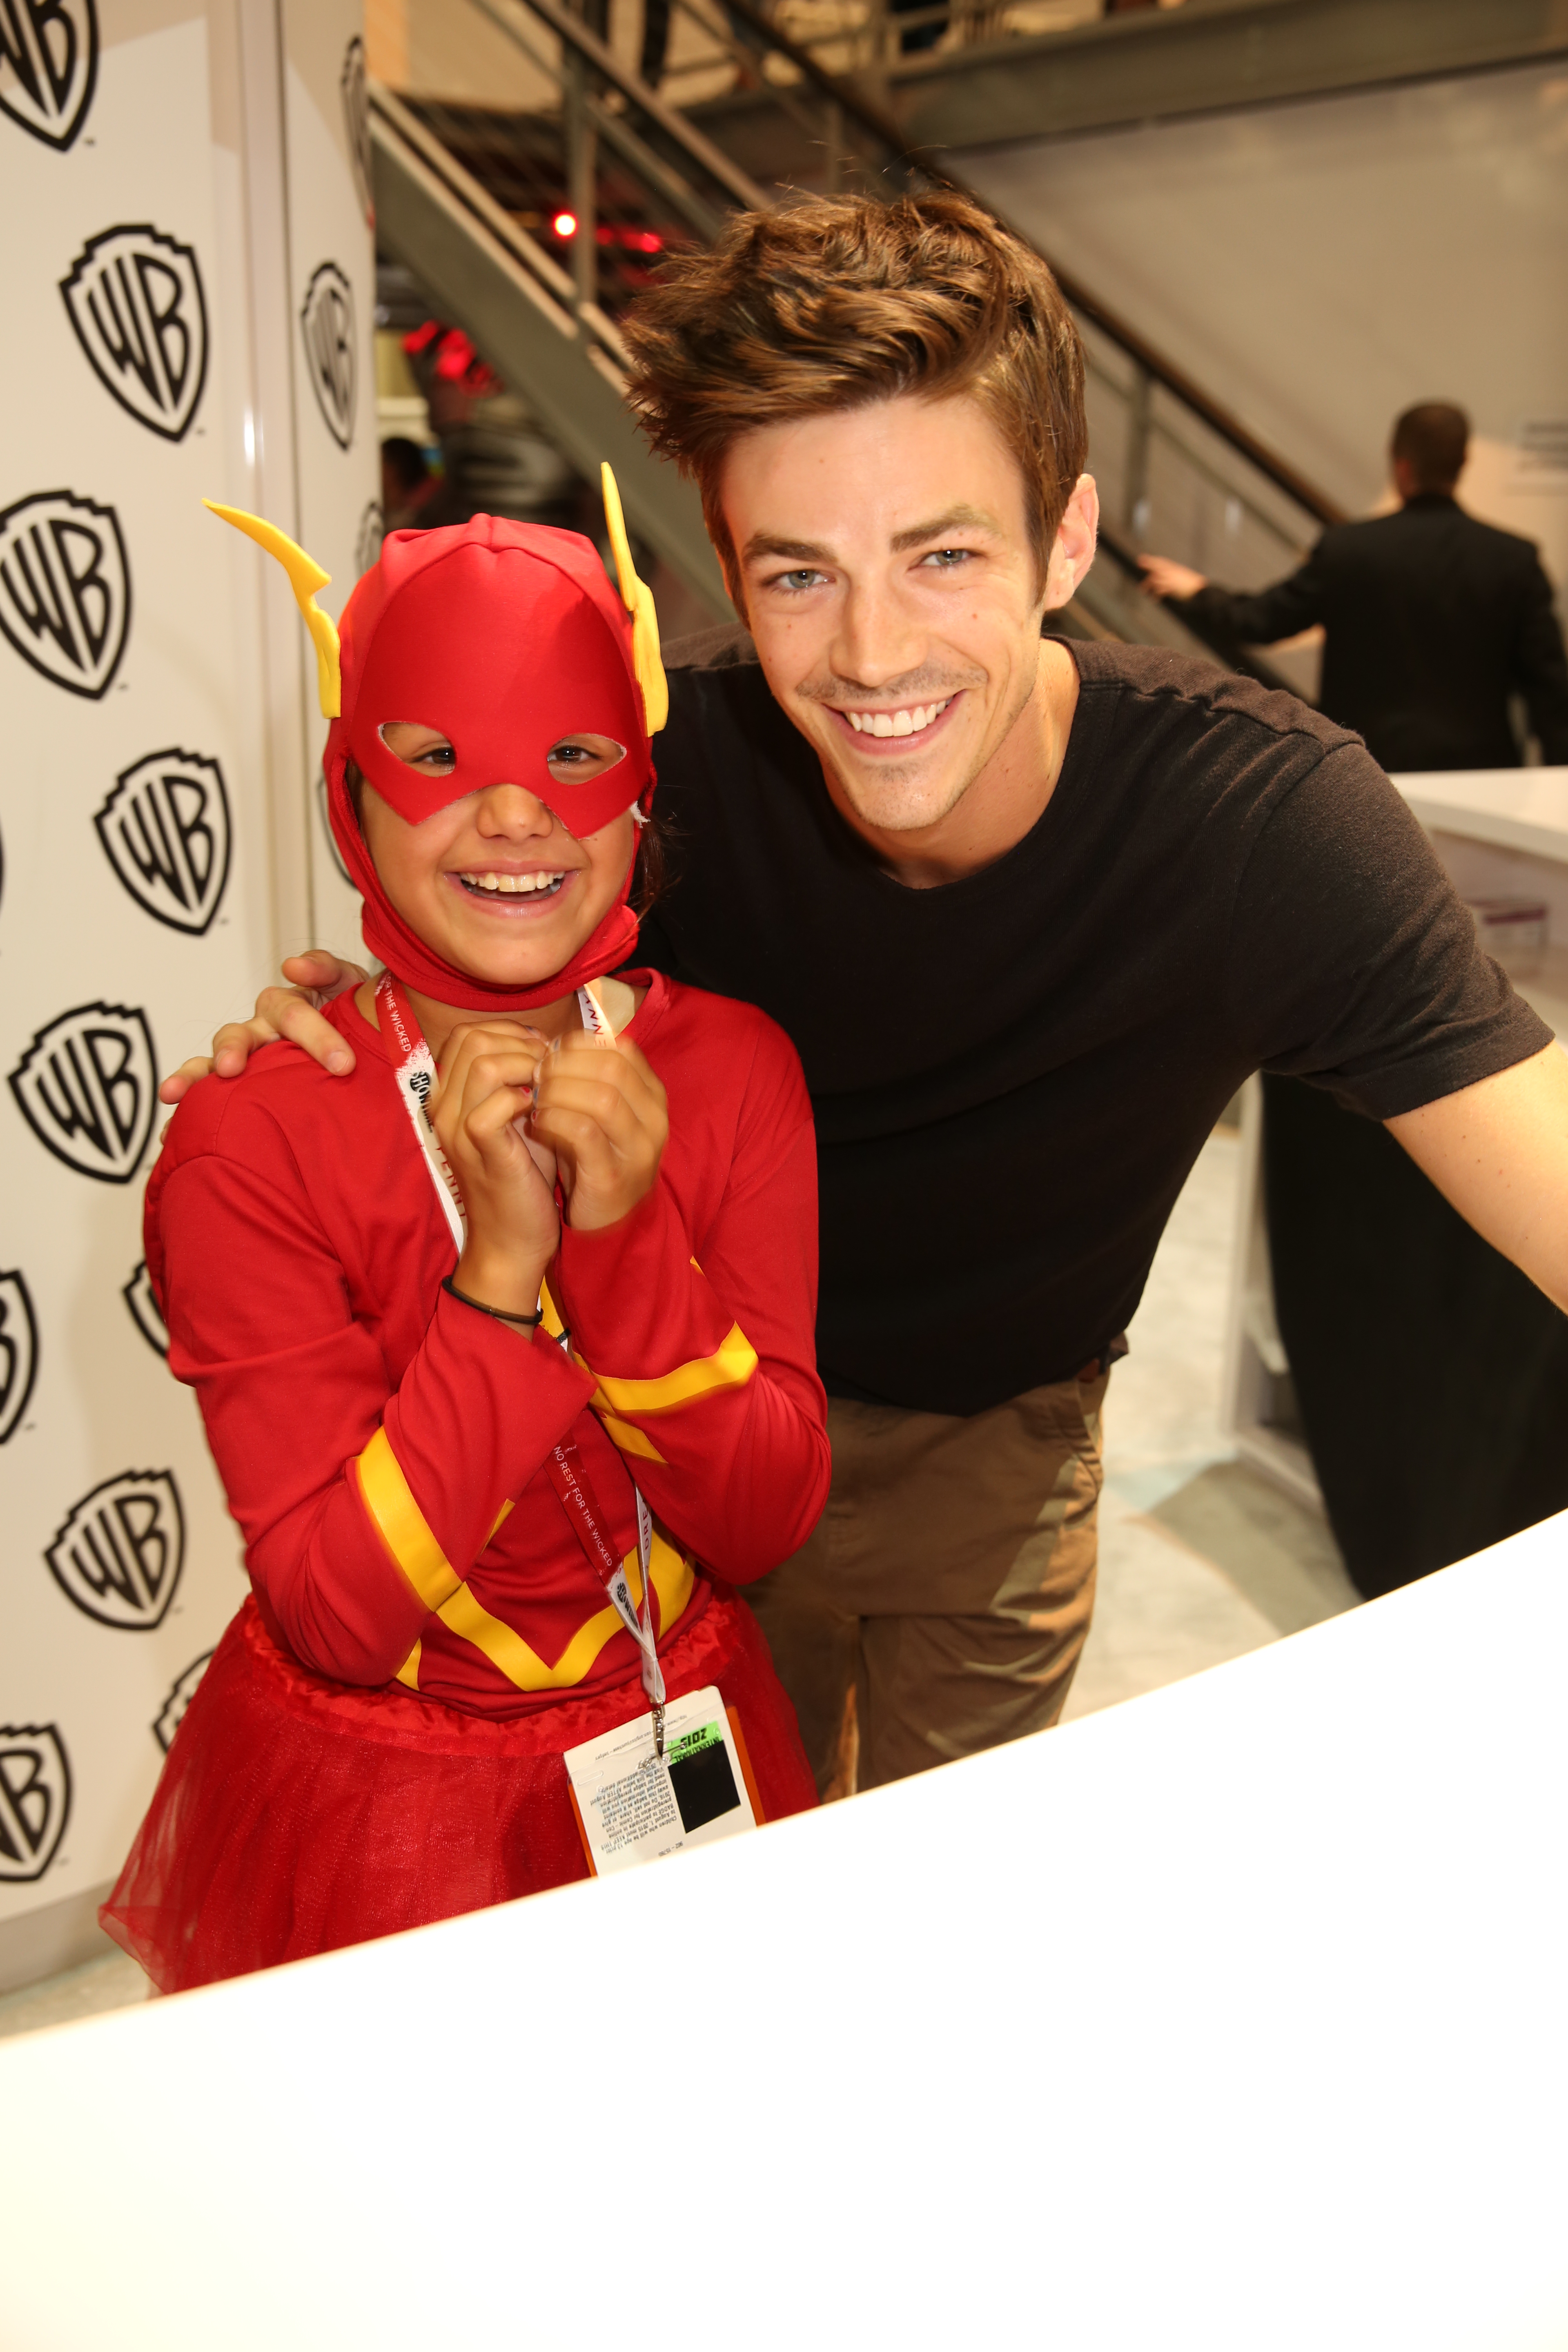 The flash signing a young flash meets his tv counterpart series star grant gustin at the flash signing in the warner bros booth during comic con 2015 wbsdcc 2015 wbei m4hsunfo Image collections